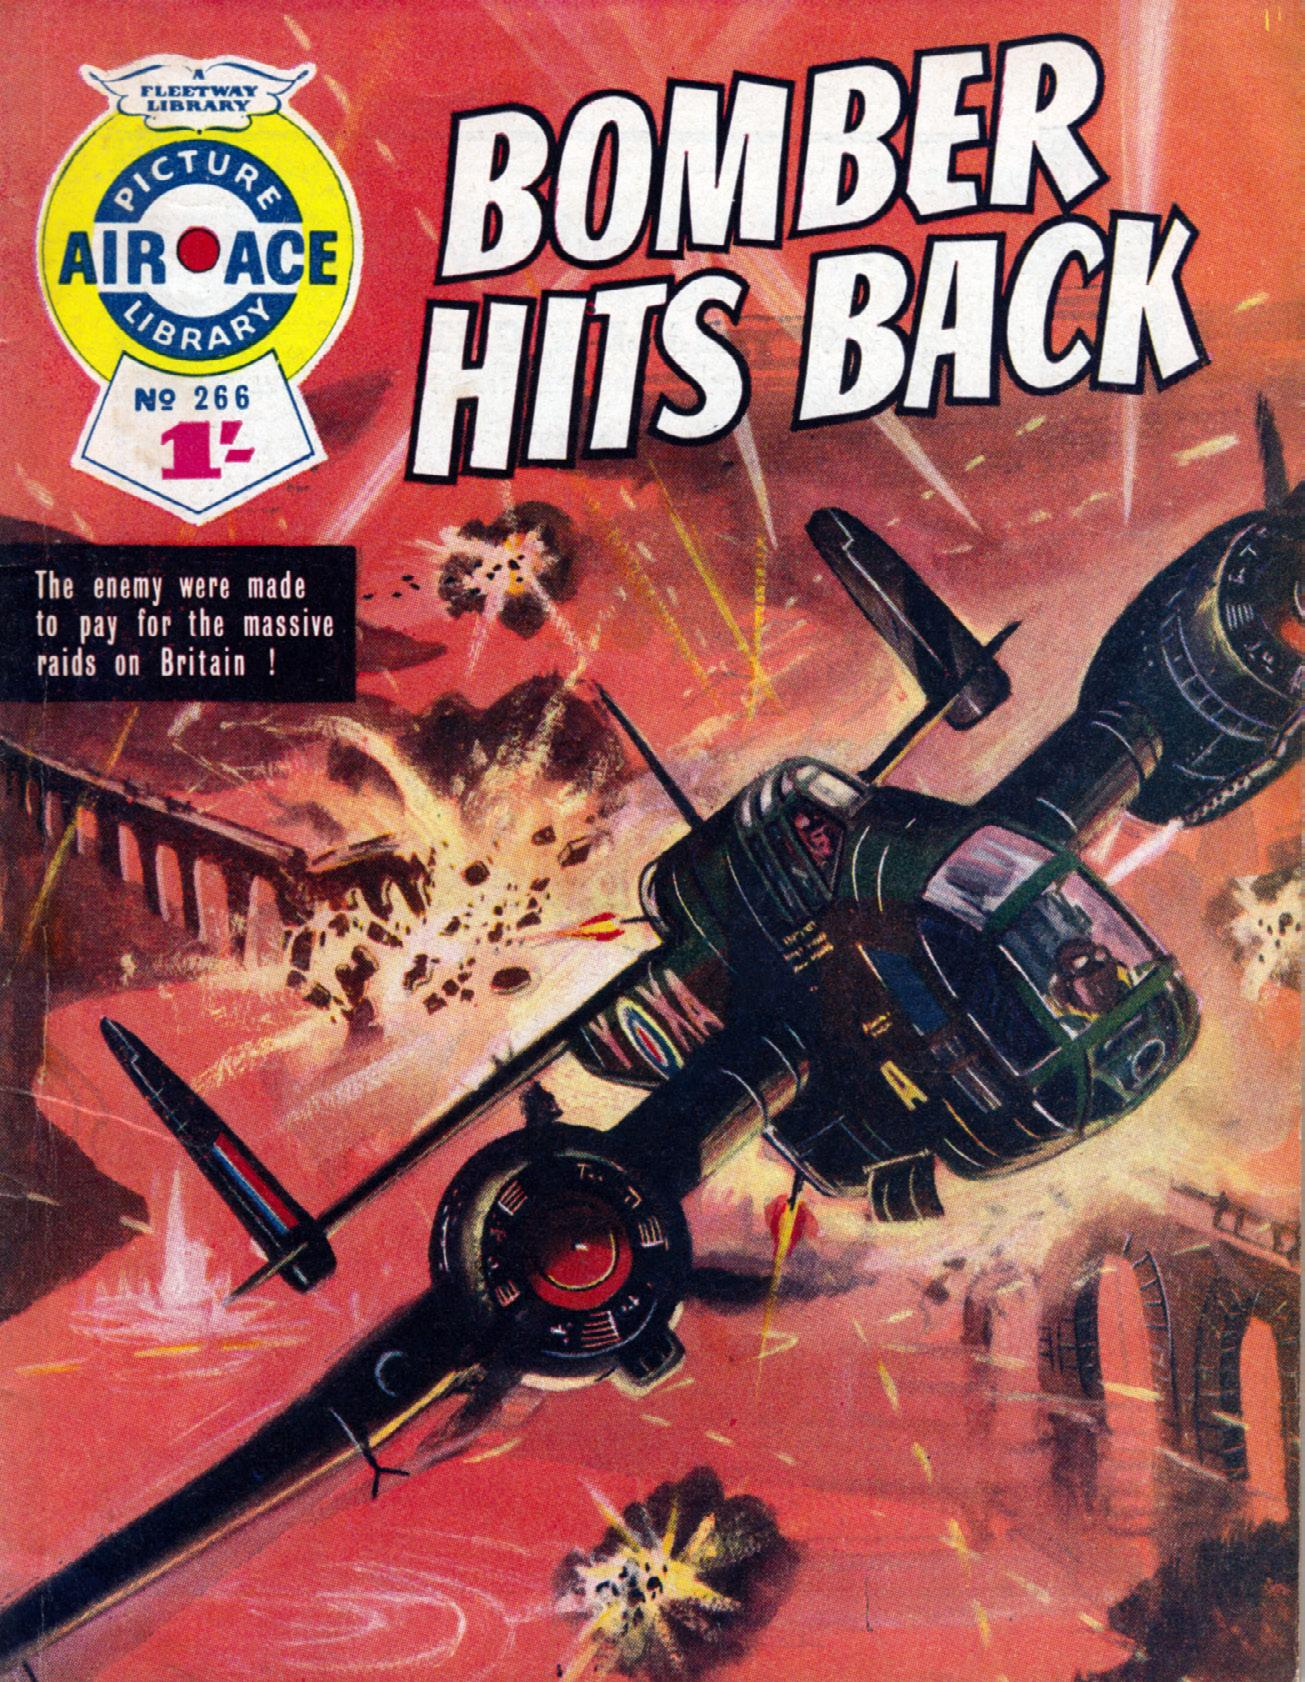 Air Ace Picture Library 266 - Bomber Hits Back [1965] (Mr Tweedy